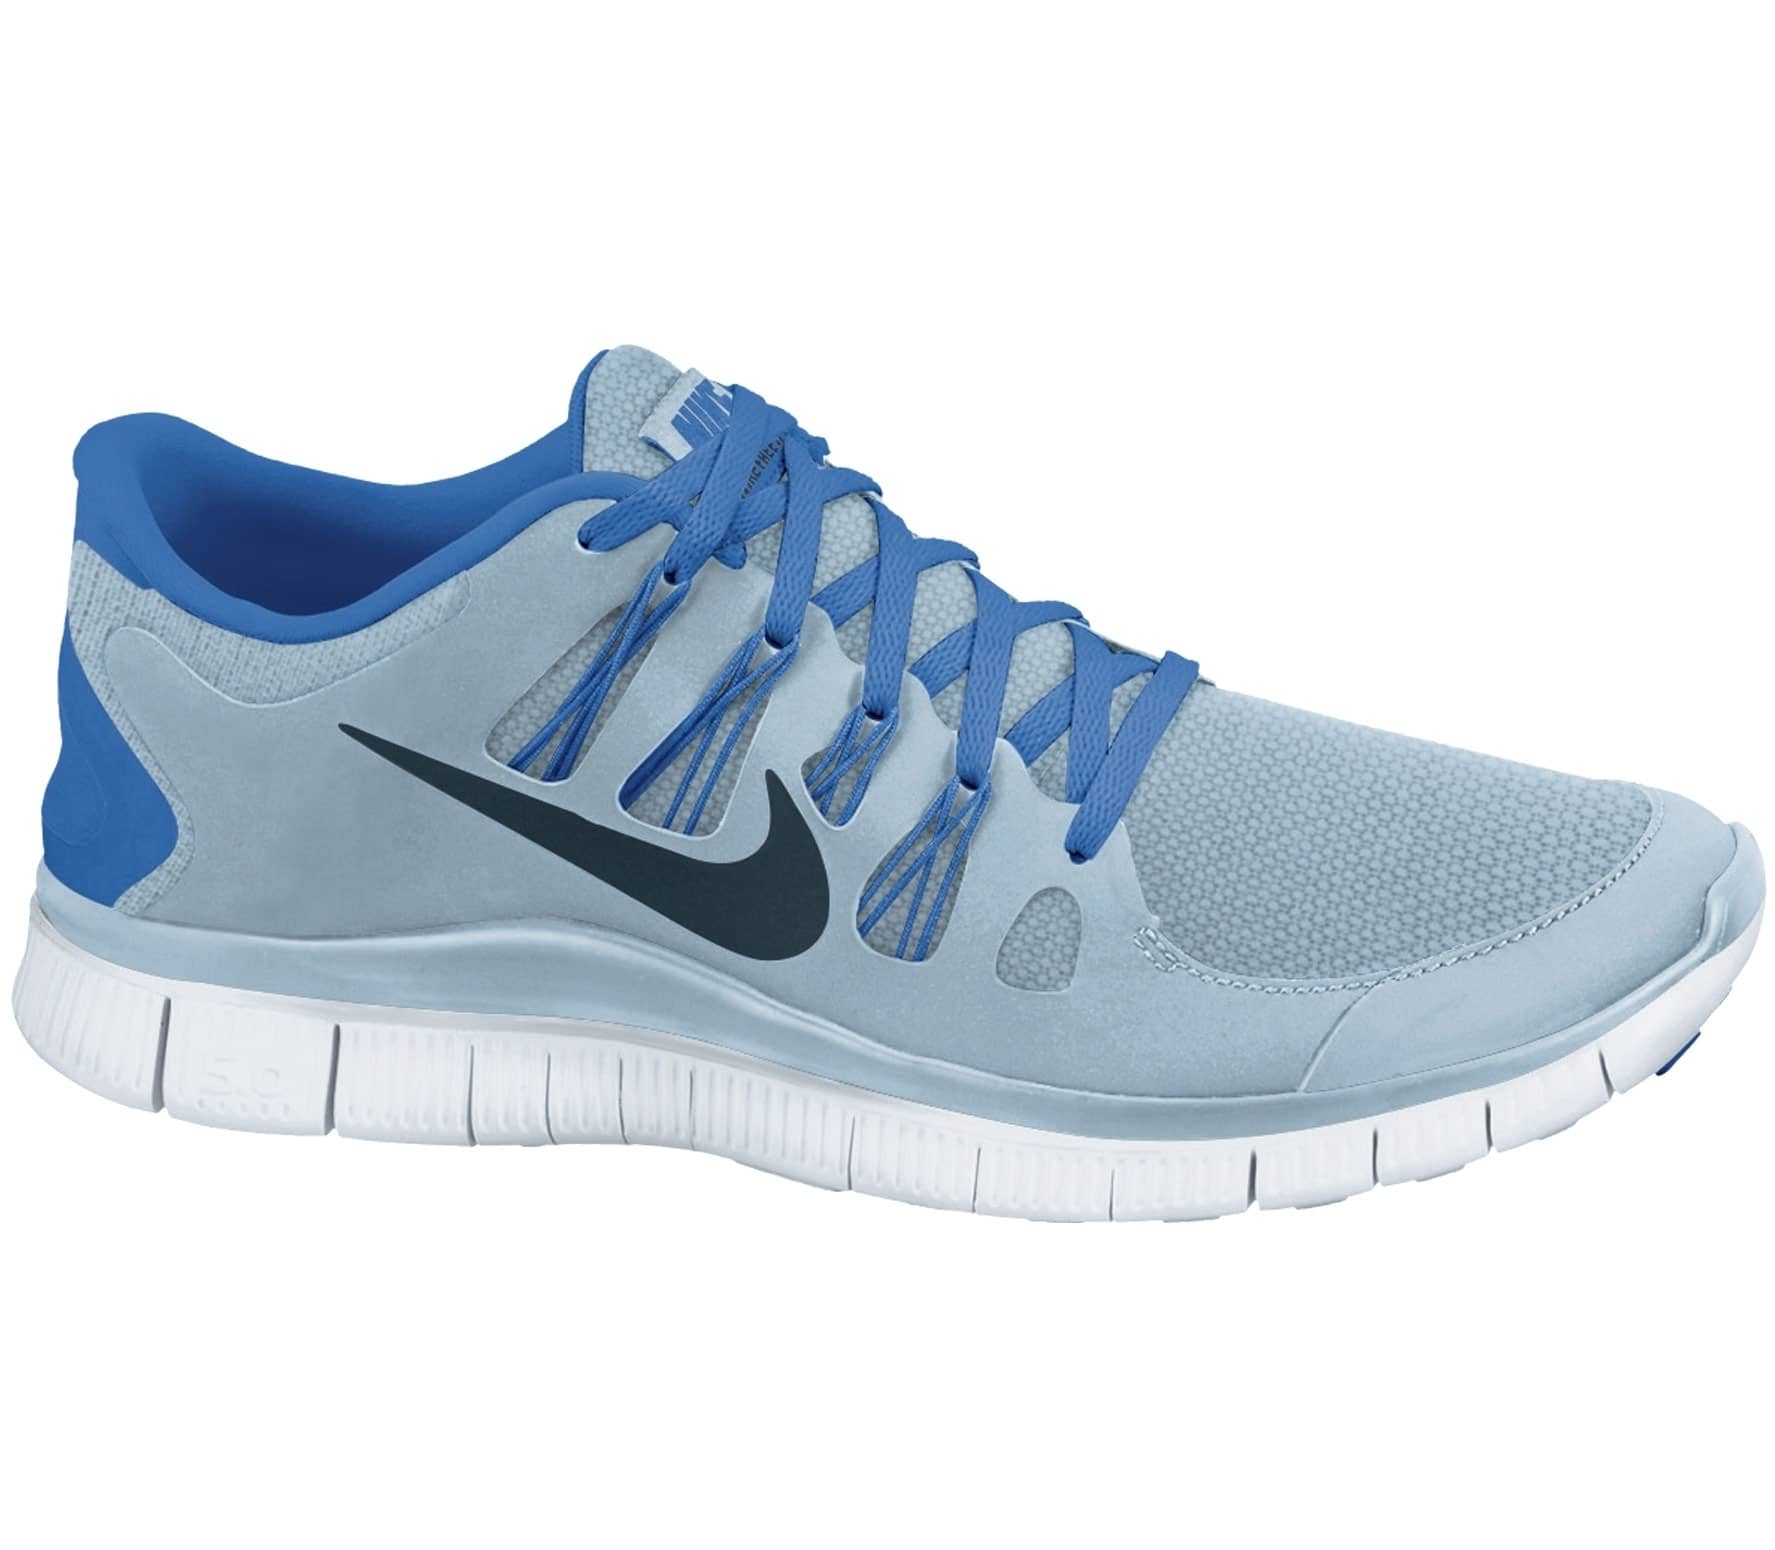 nike free 5 0 herren laufschuh blau im online shop von. Black Bedroom Furniture Sets. Home Design Ideas